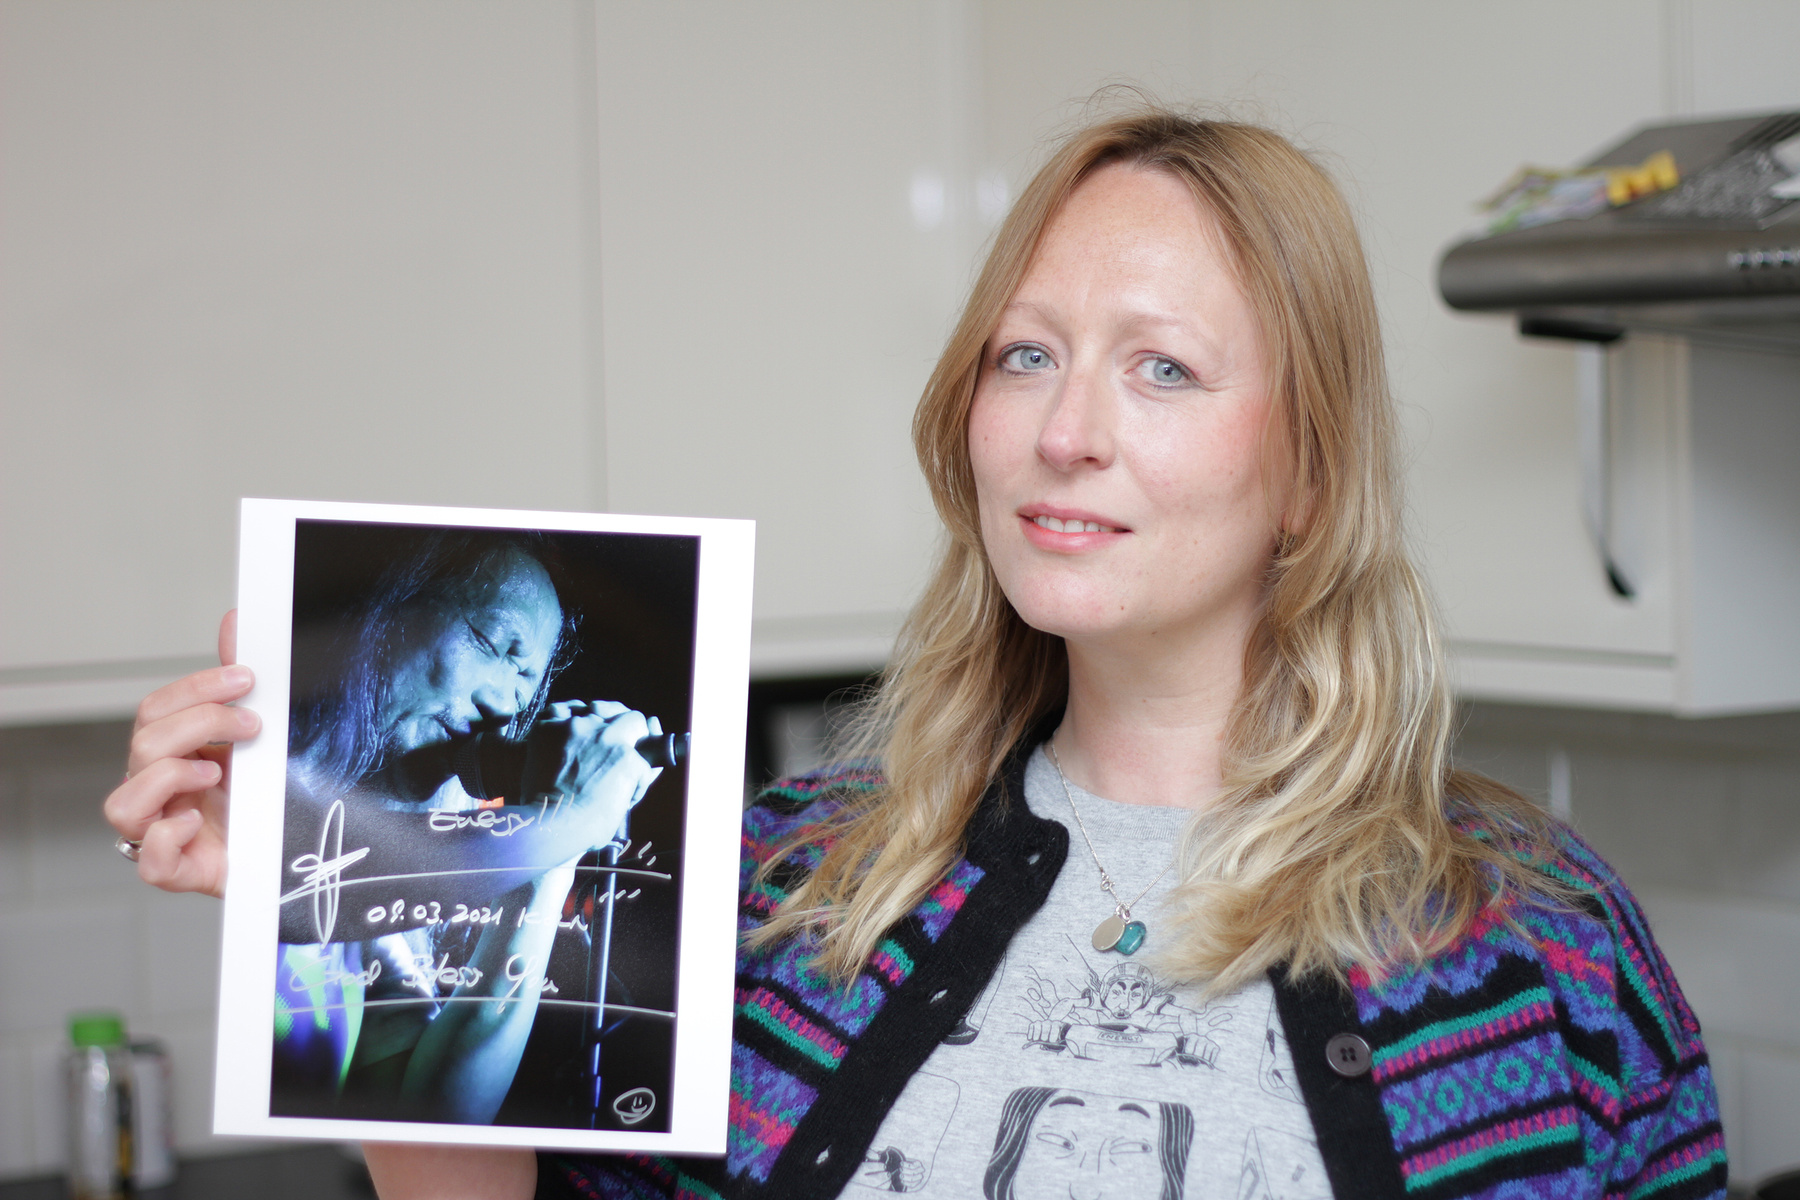 Director Michelle Heighway Announces Winners of Signed Photos by Damo Suzuki